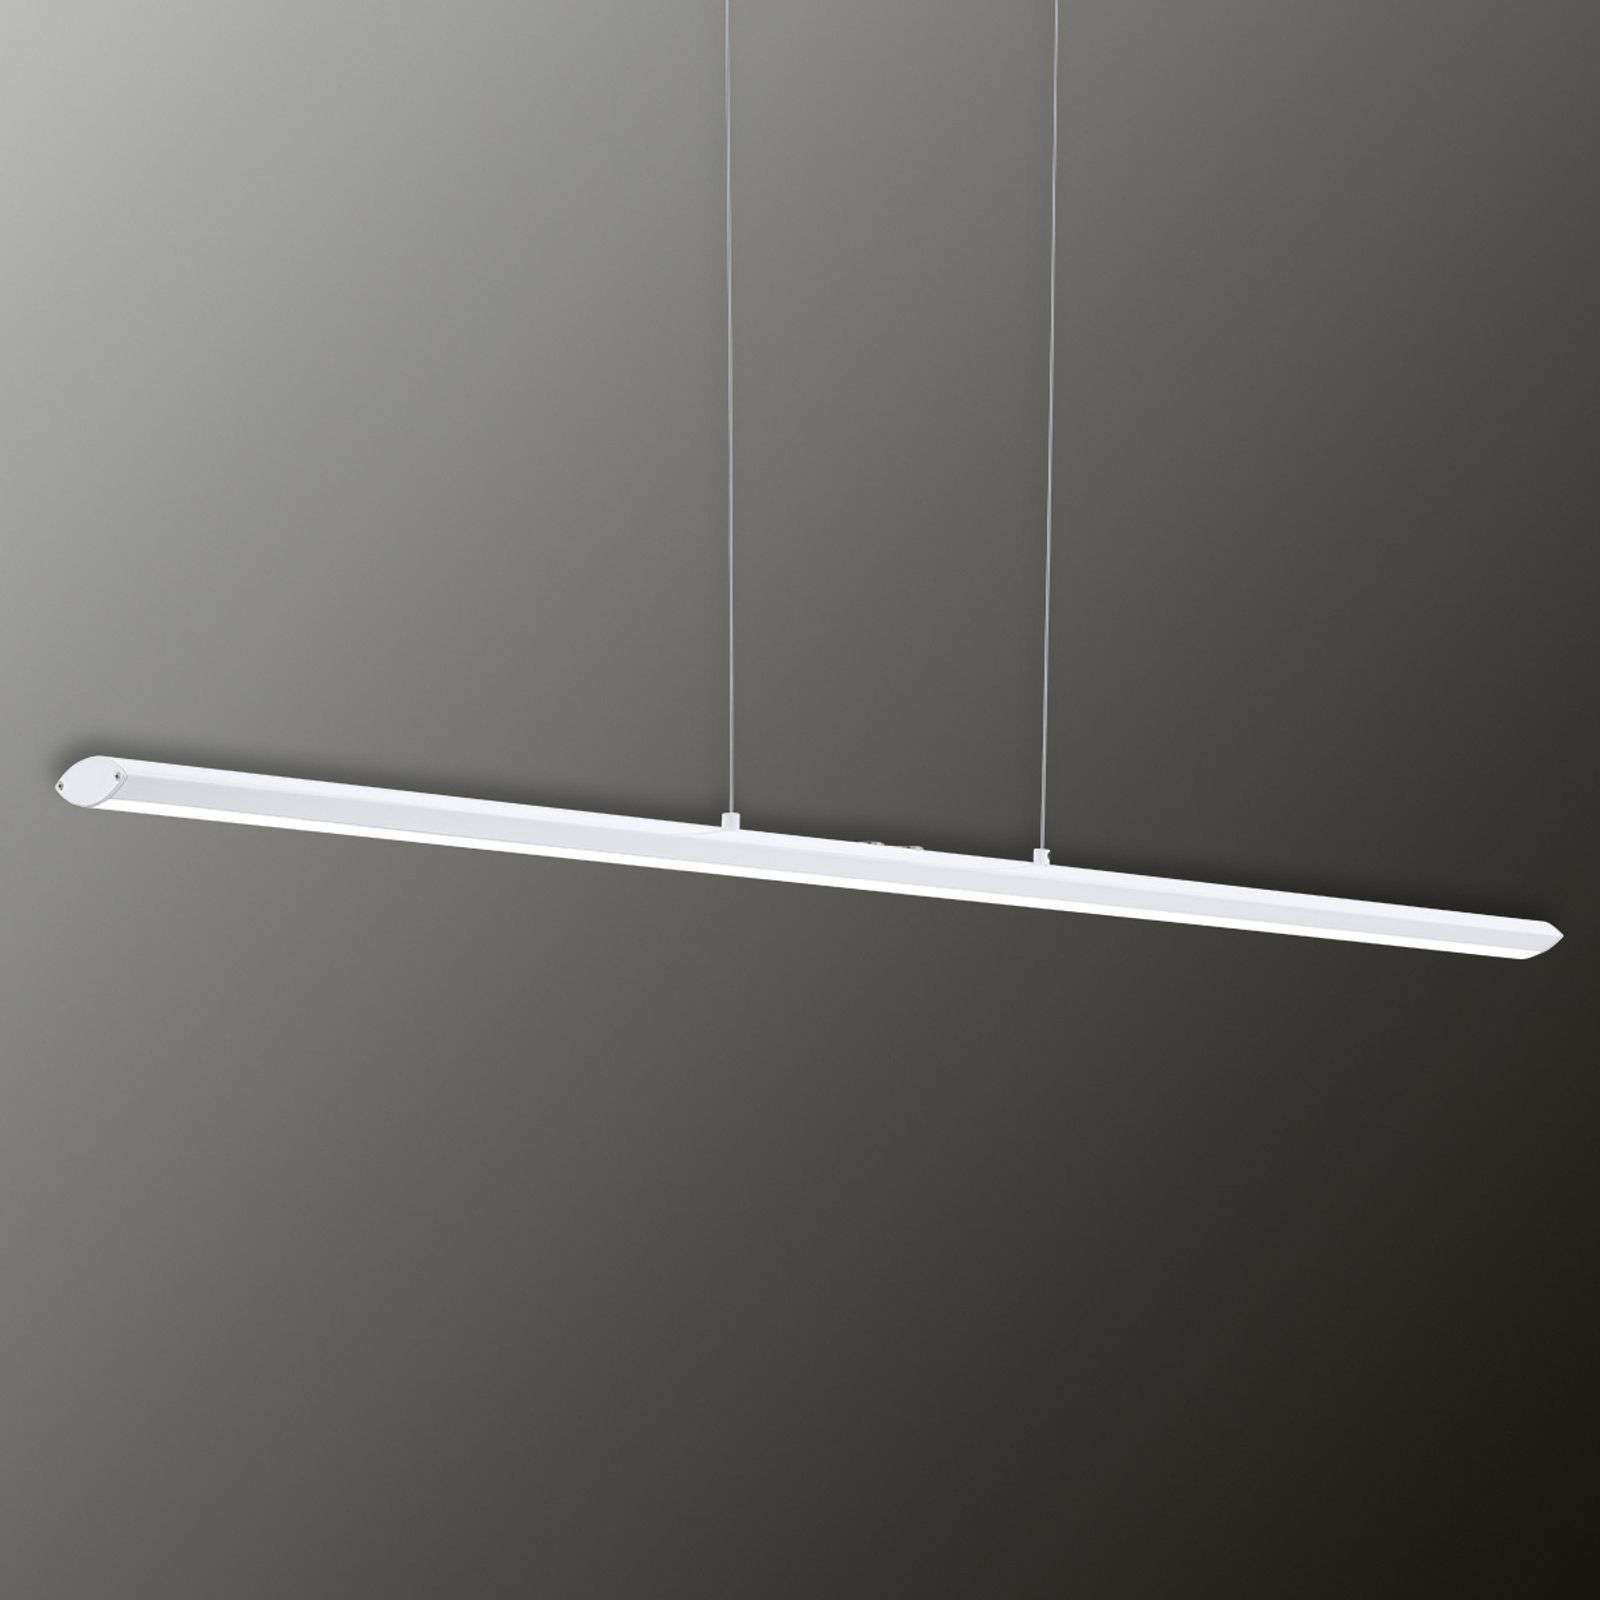 Pellaro - suspension LED dimmable en blanc